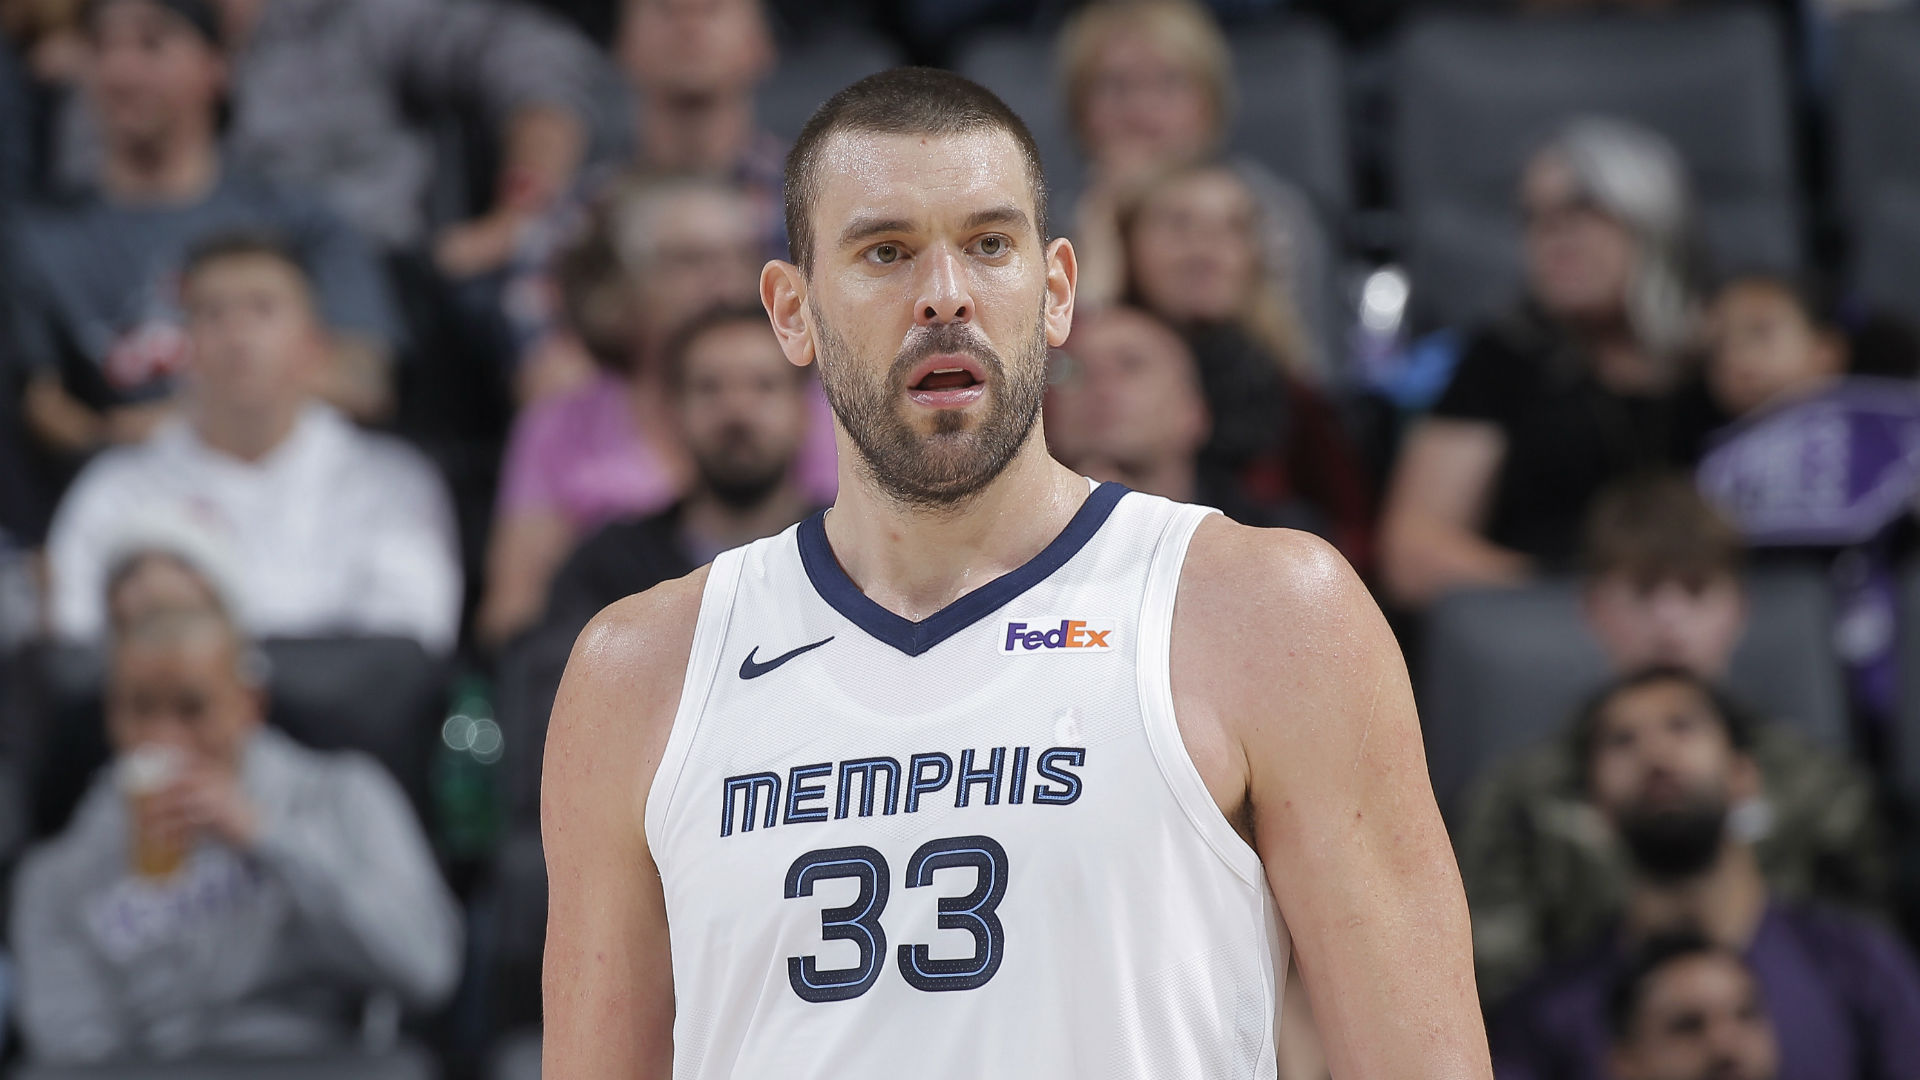 Report Marc Gasol To Make Toronto Raptors Debut Against